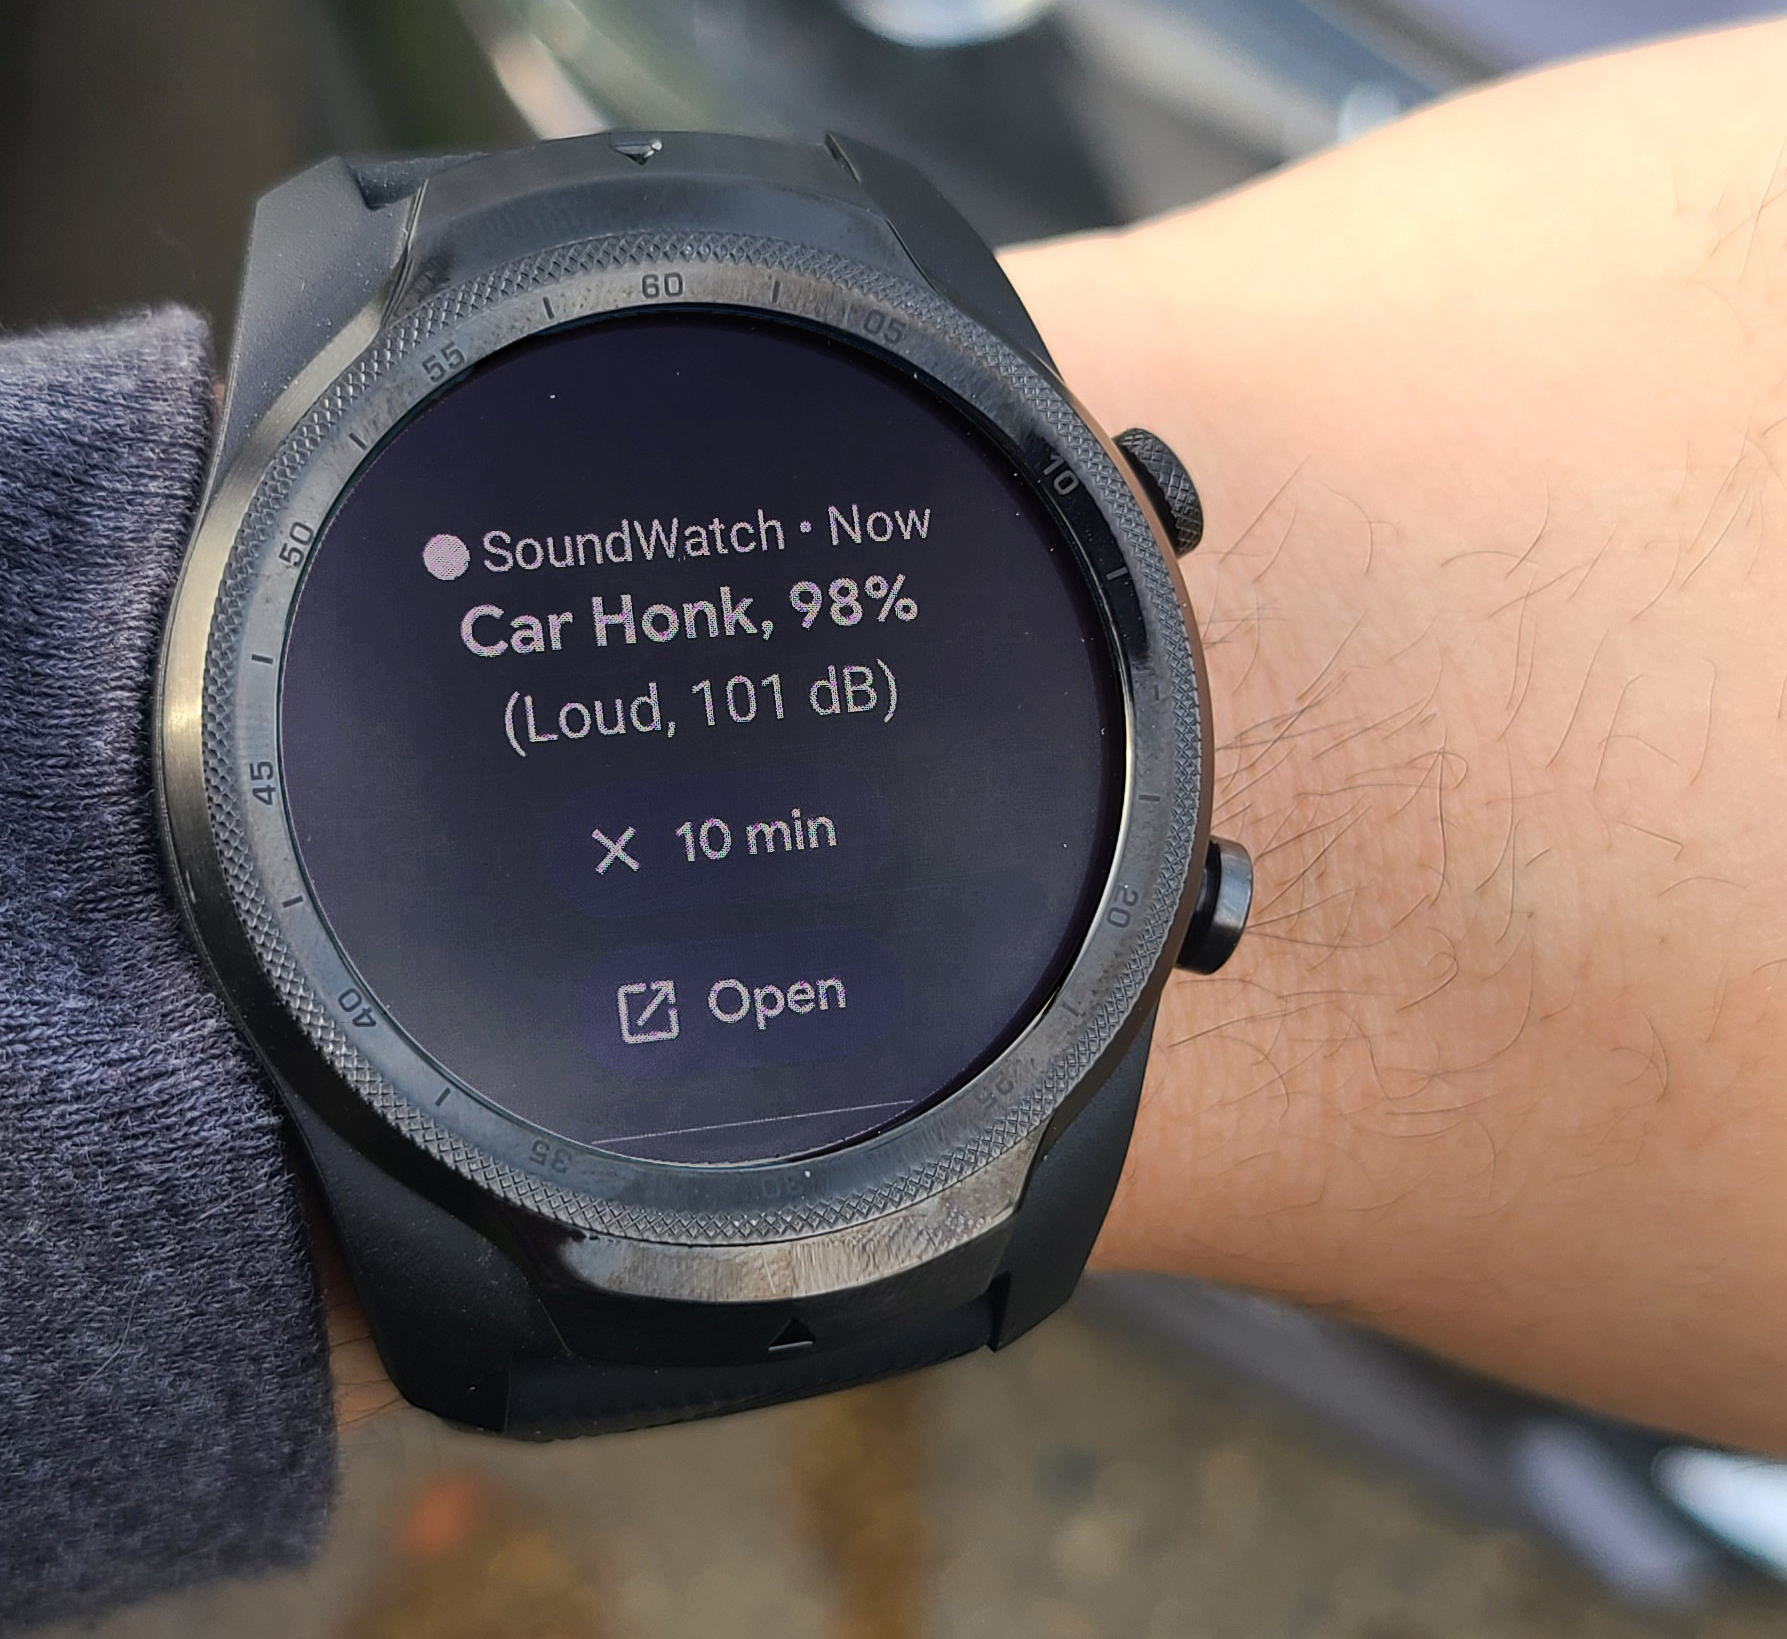 Image of the smartwatch app